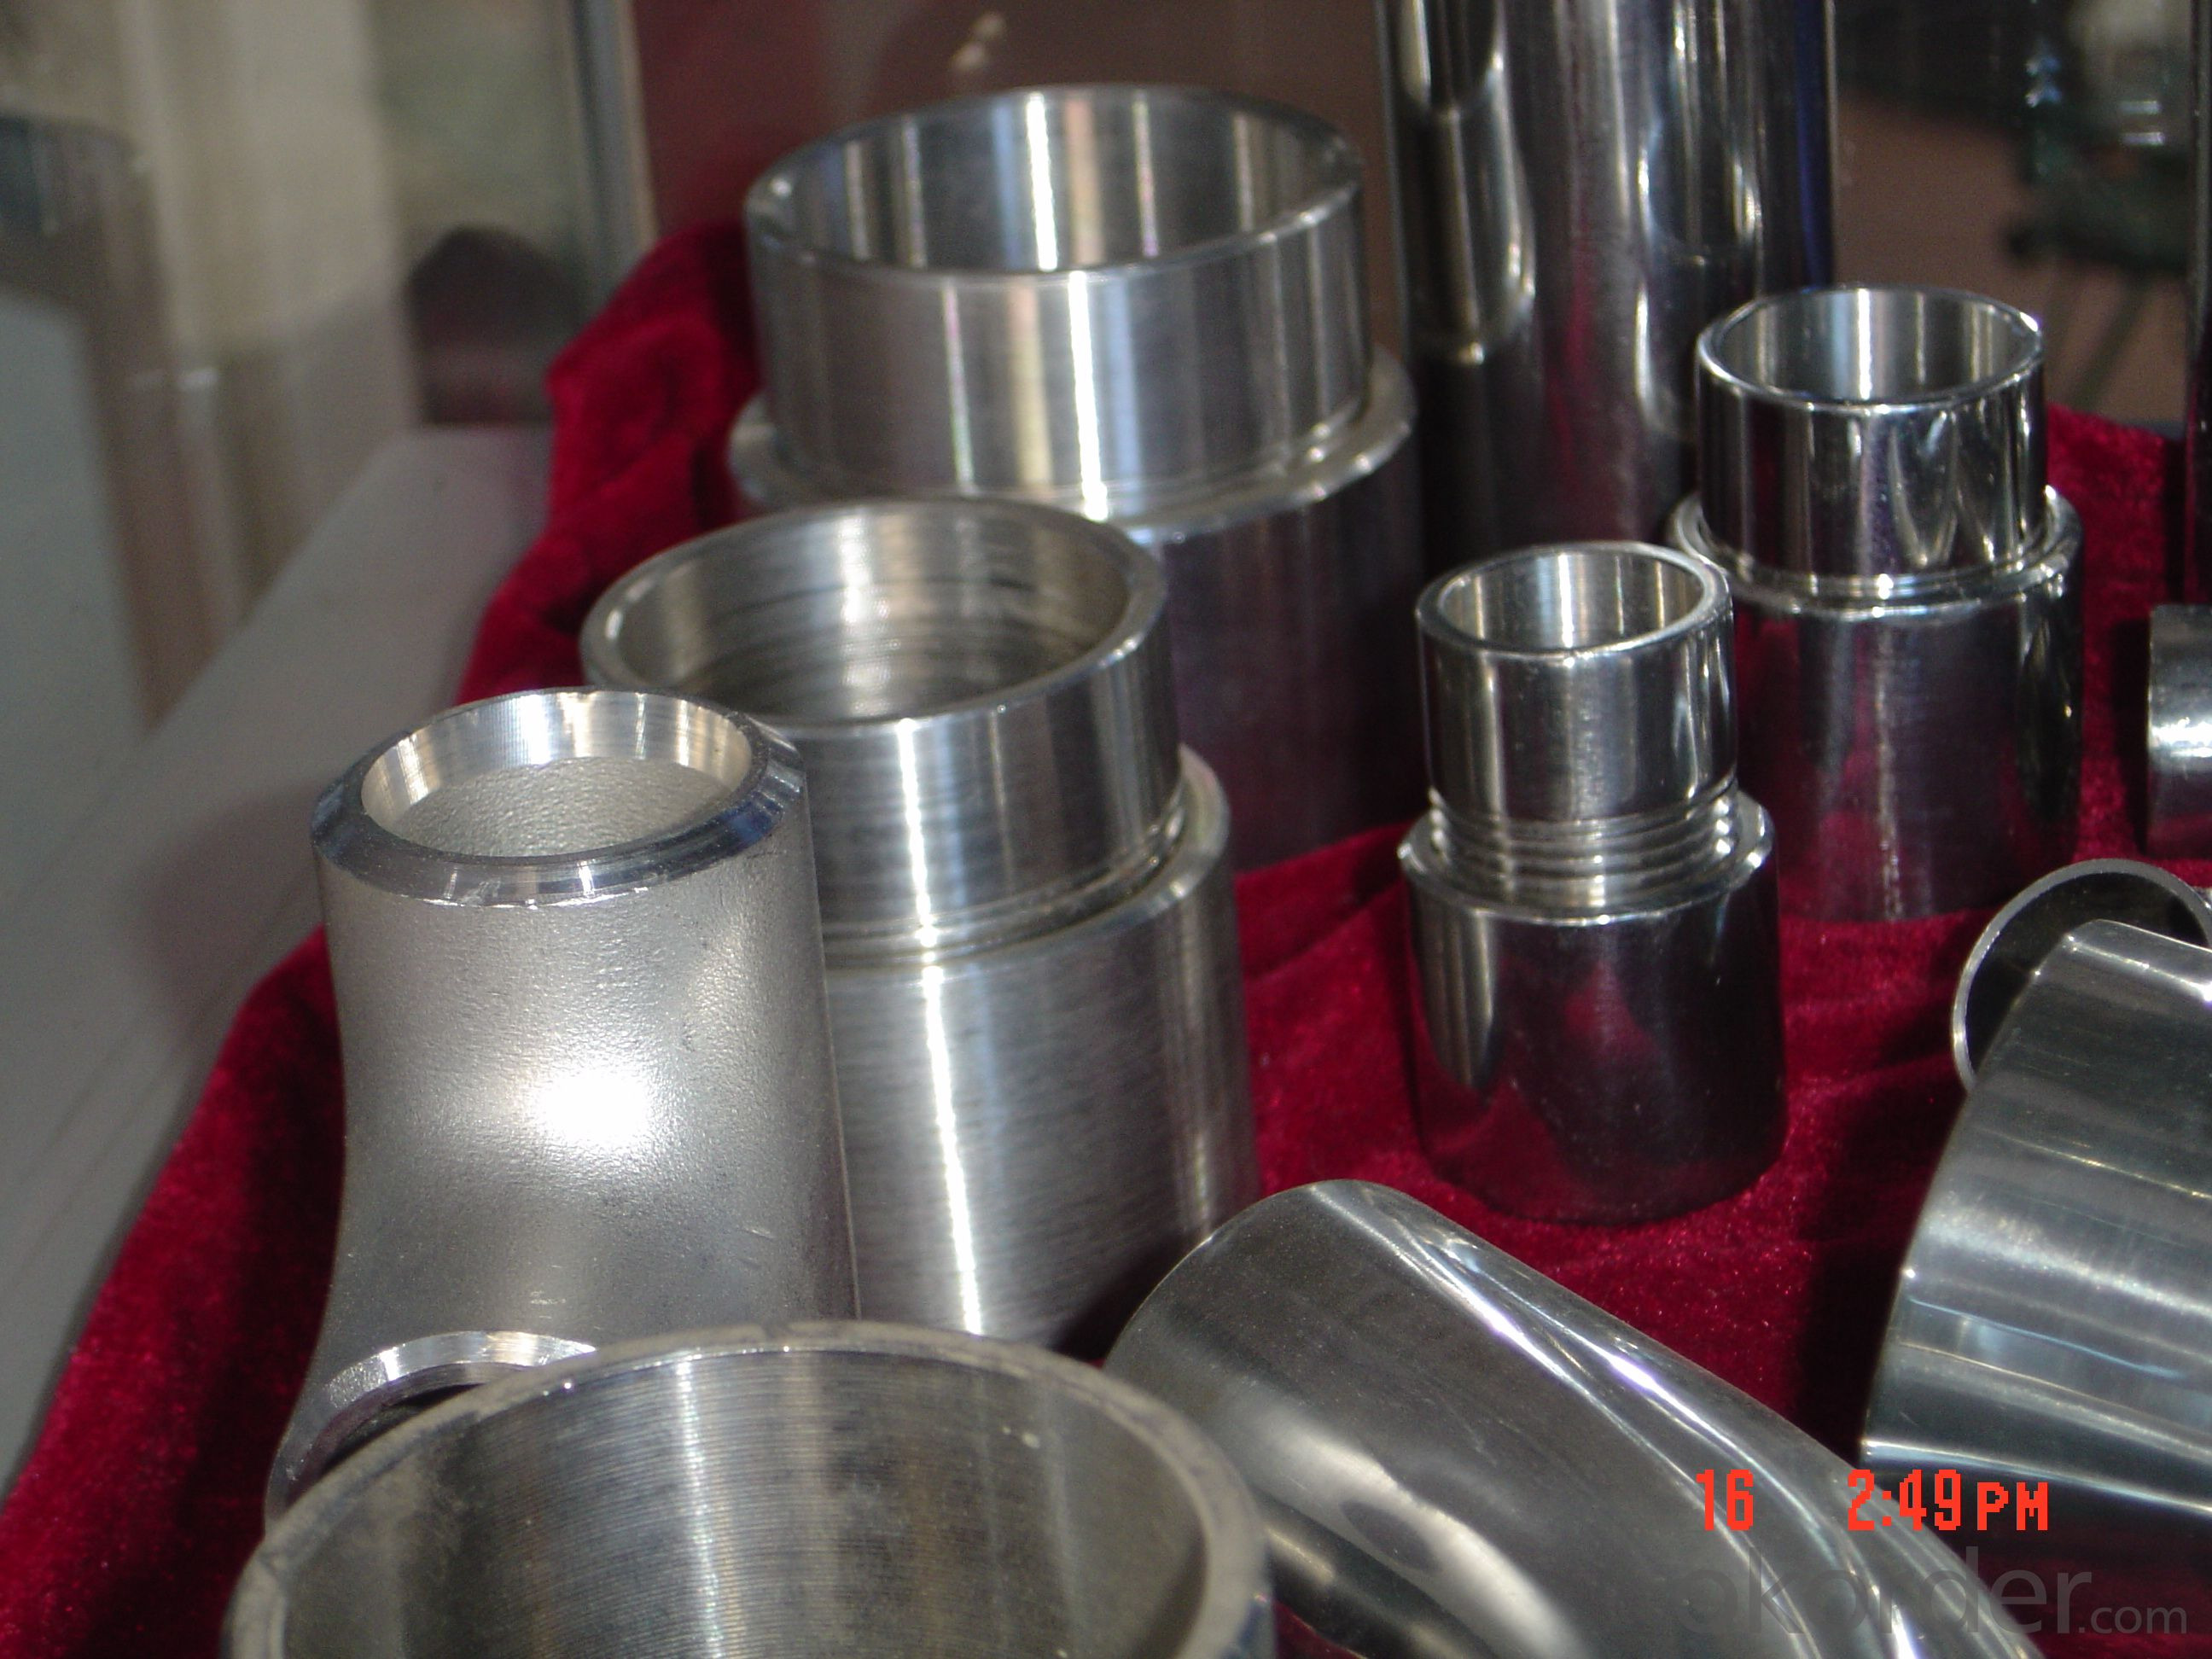 STAINLESS STEEL PIPE BUTT WELDED 90D ELBOW LR 304/316 ANSI B16.9 BEST PRICE BEST QUALITY